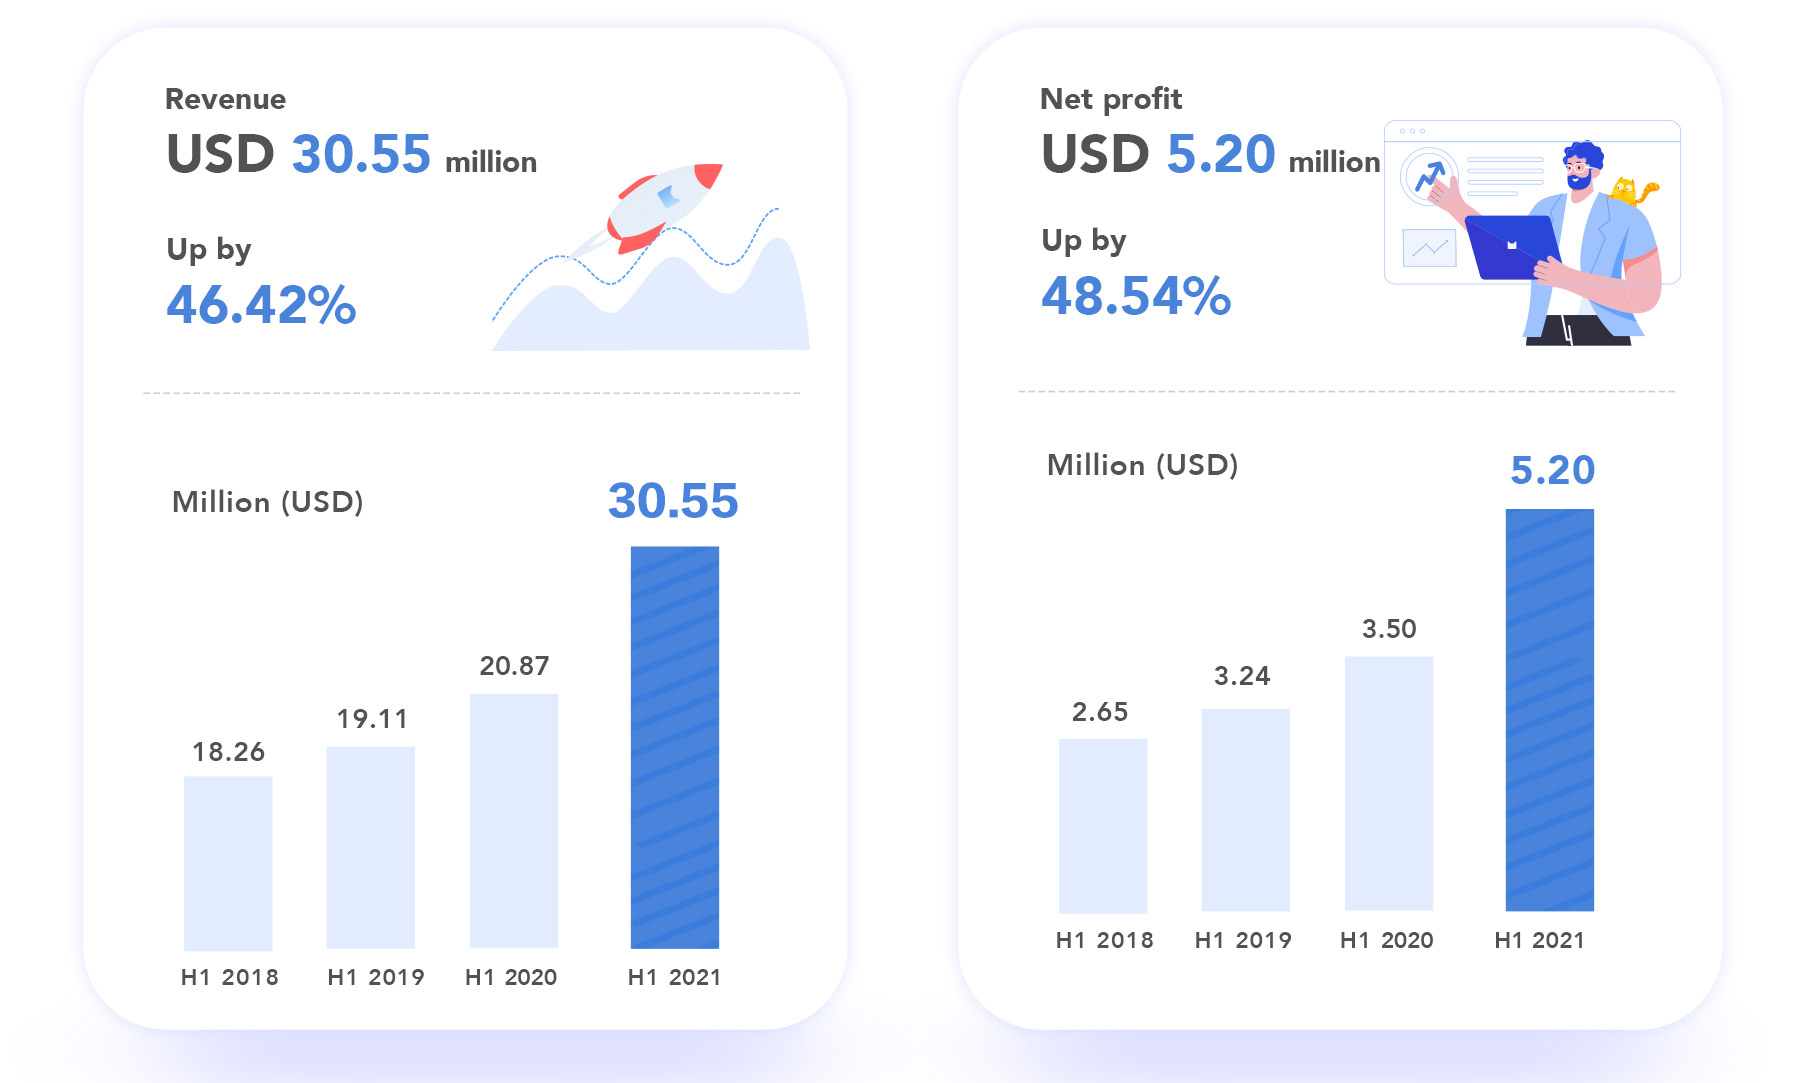 InHand's revenue and net profit data for H1 2021